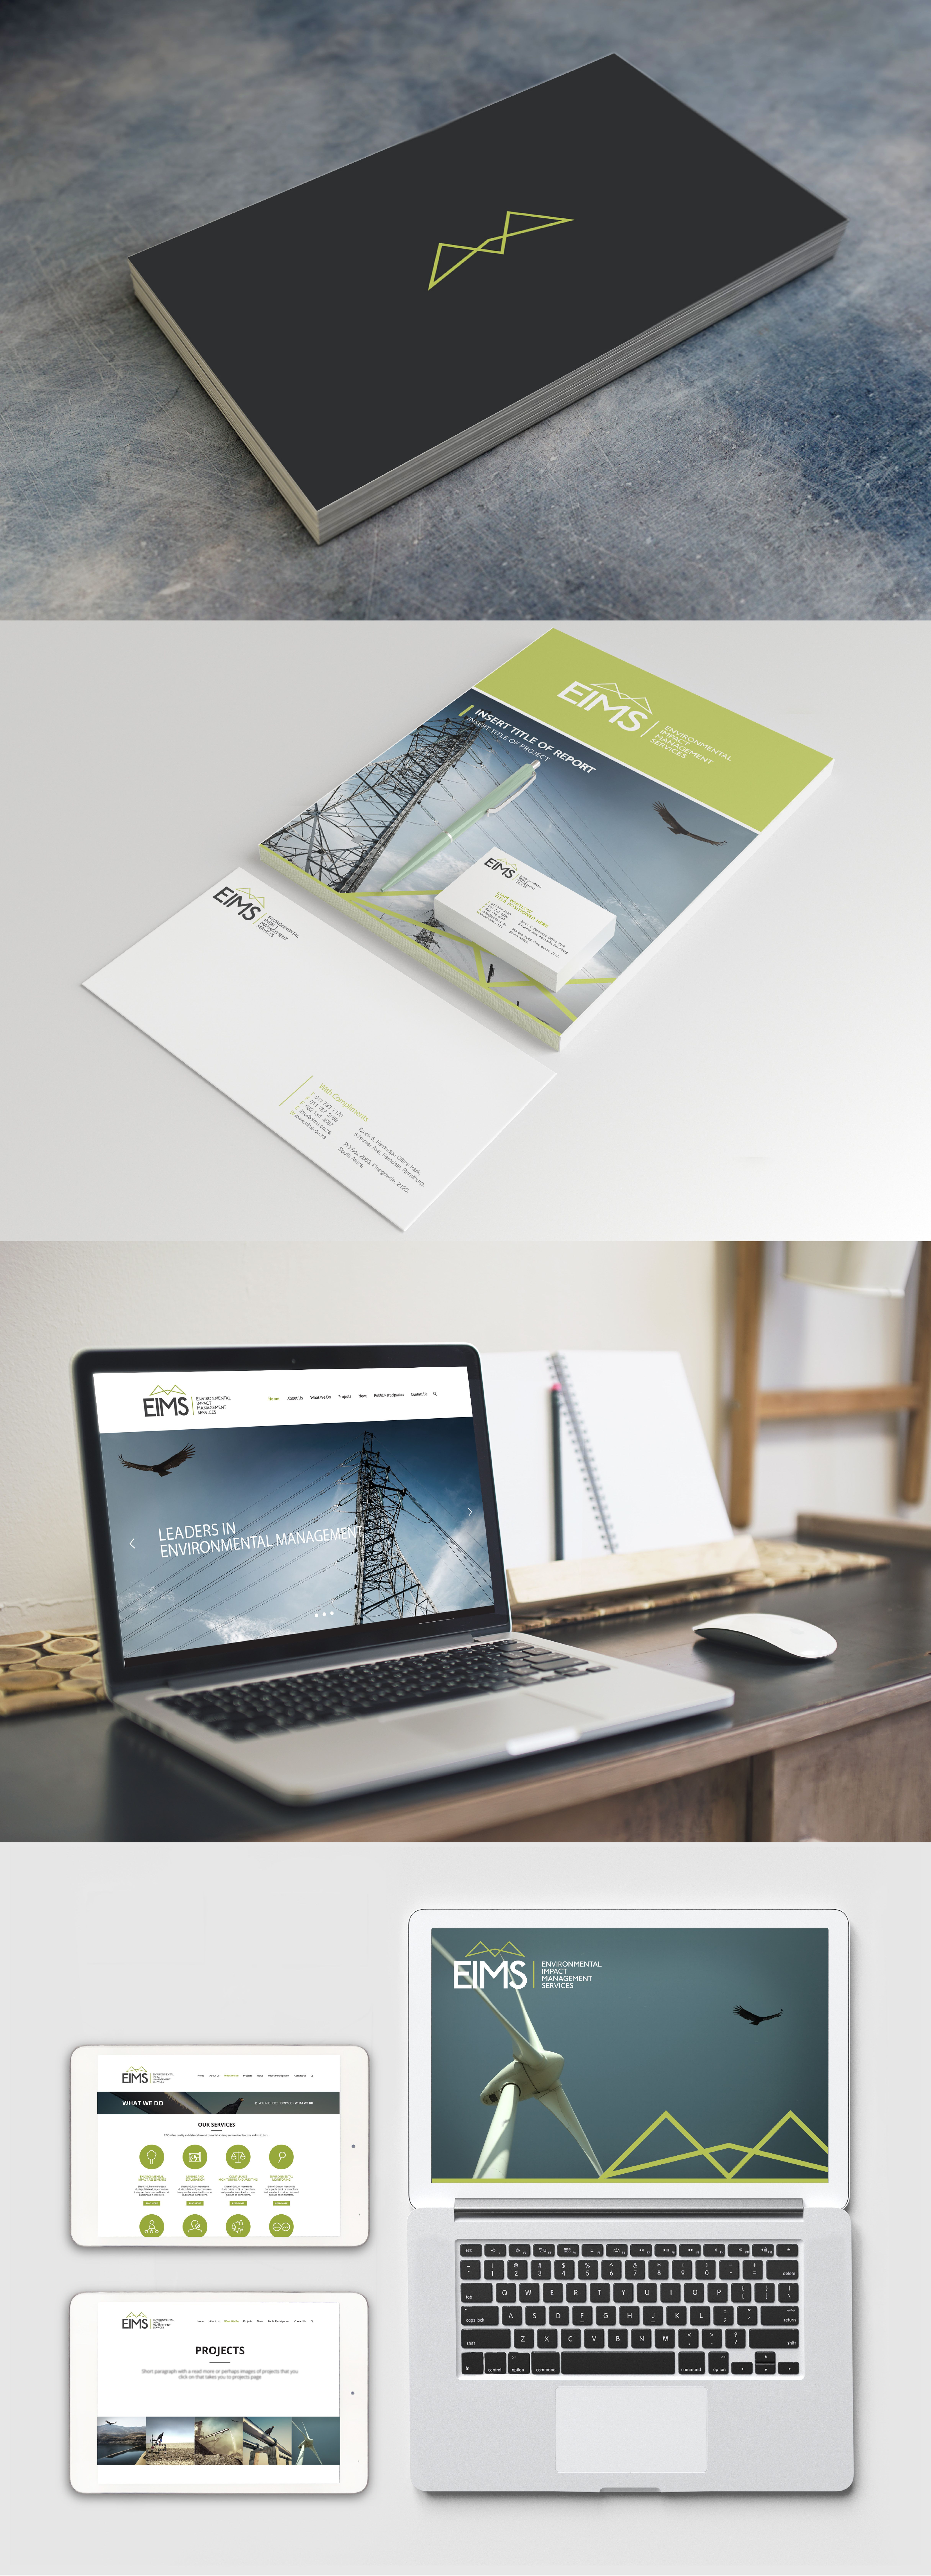 A logo development brand identity and website creation for EIMS